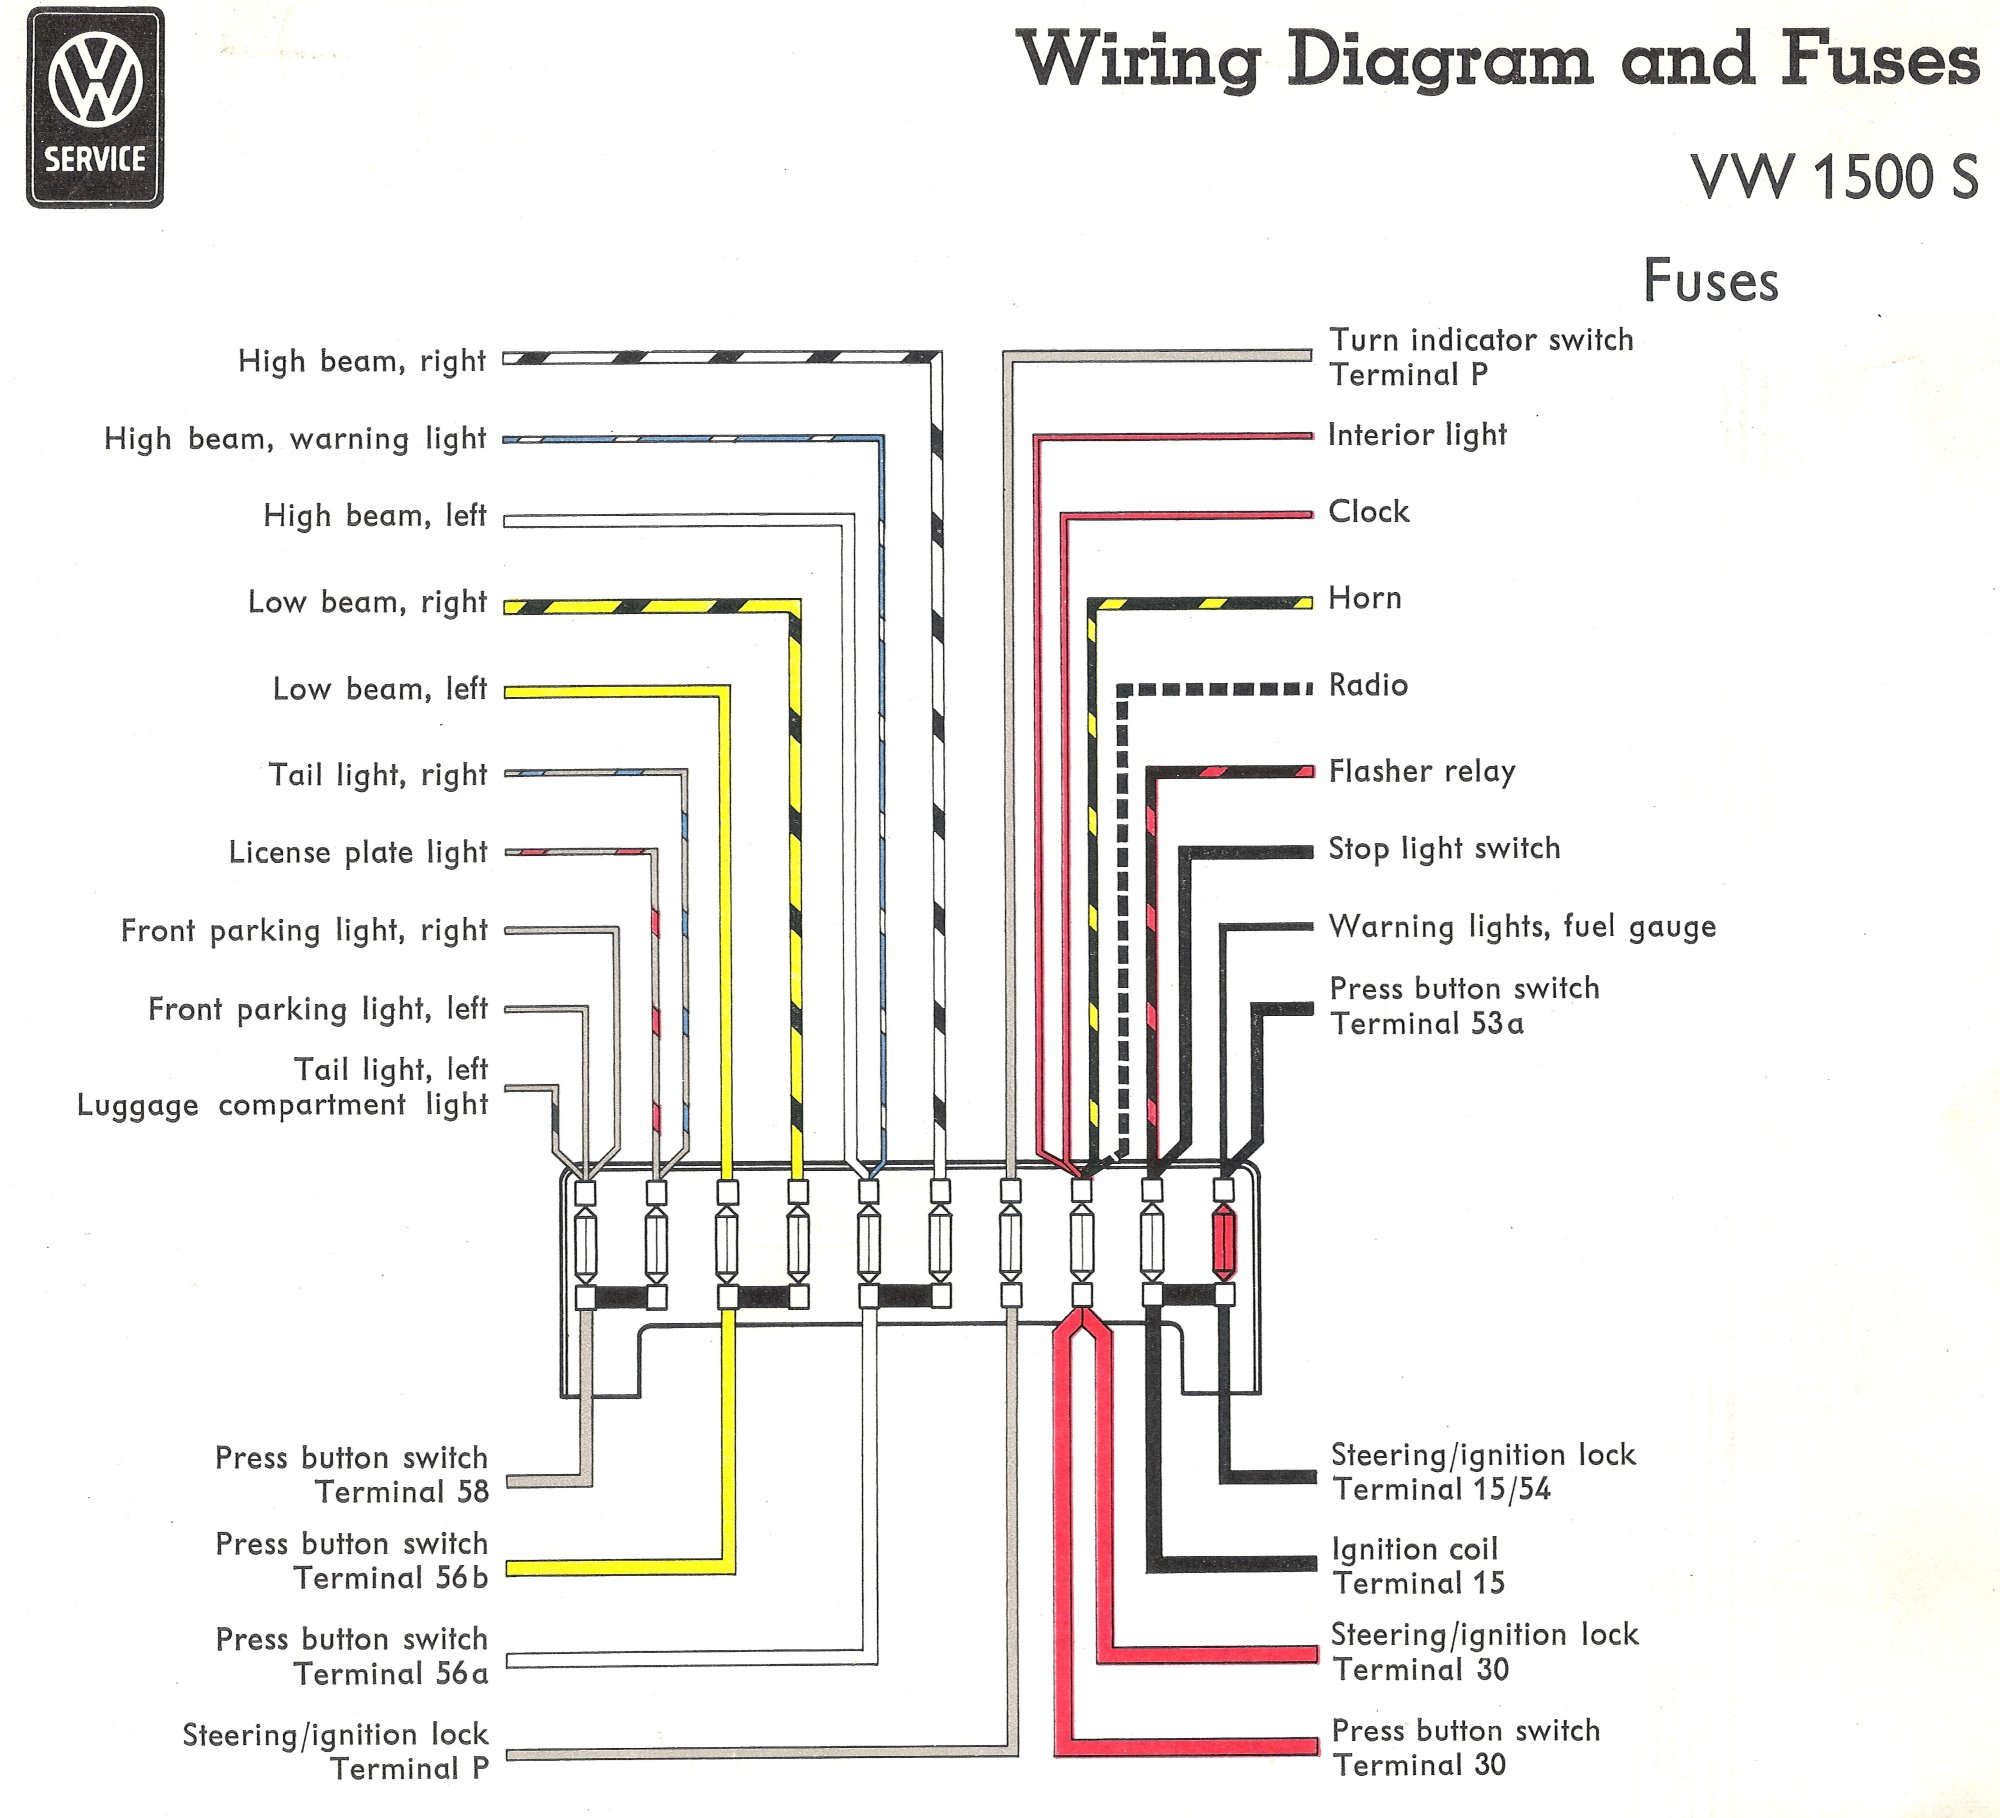 hight resolution of 1970 vw bug fuse box wiring wiring diagram for you 1970 vw bug fuse box wiring